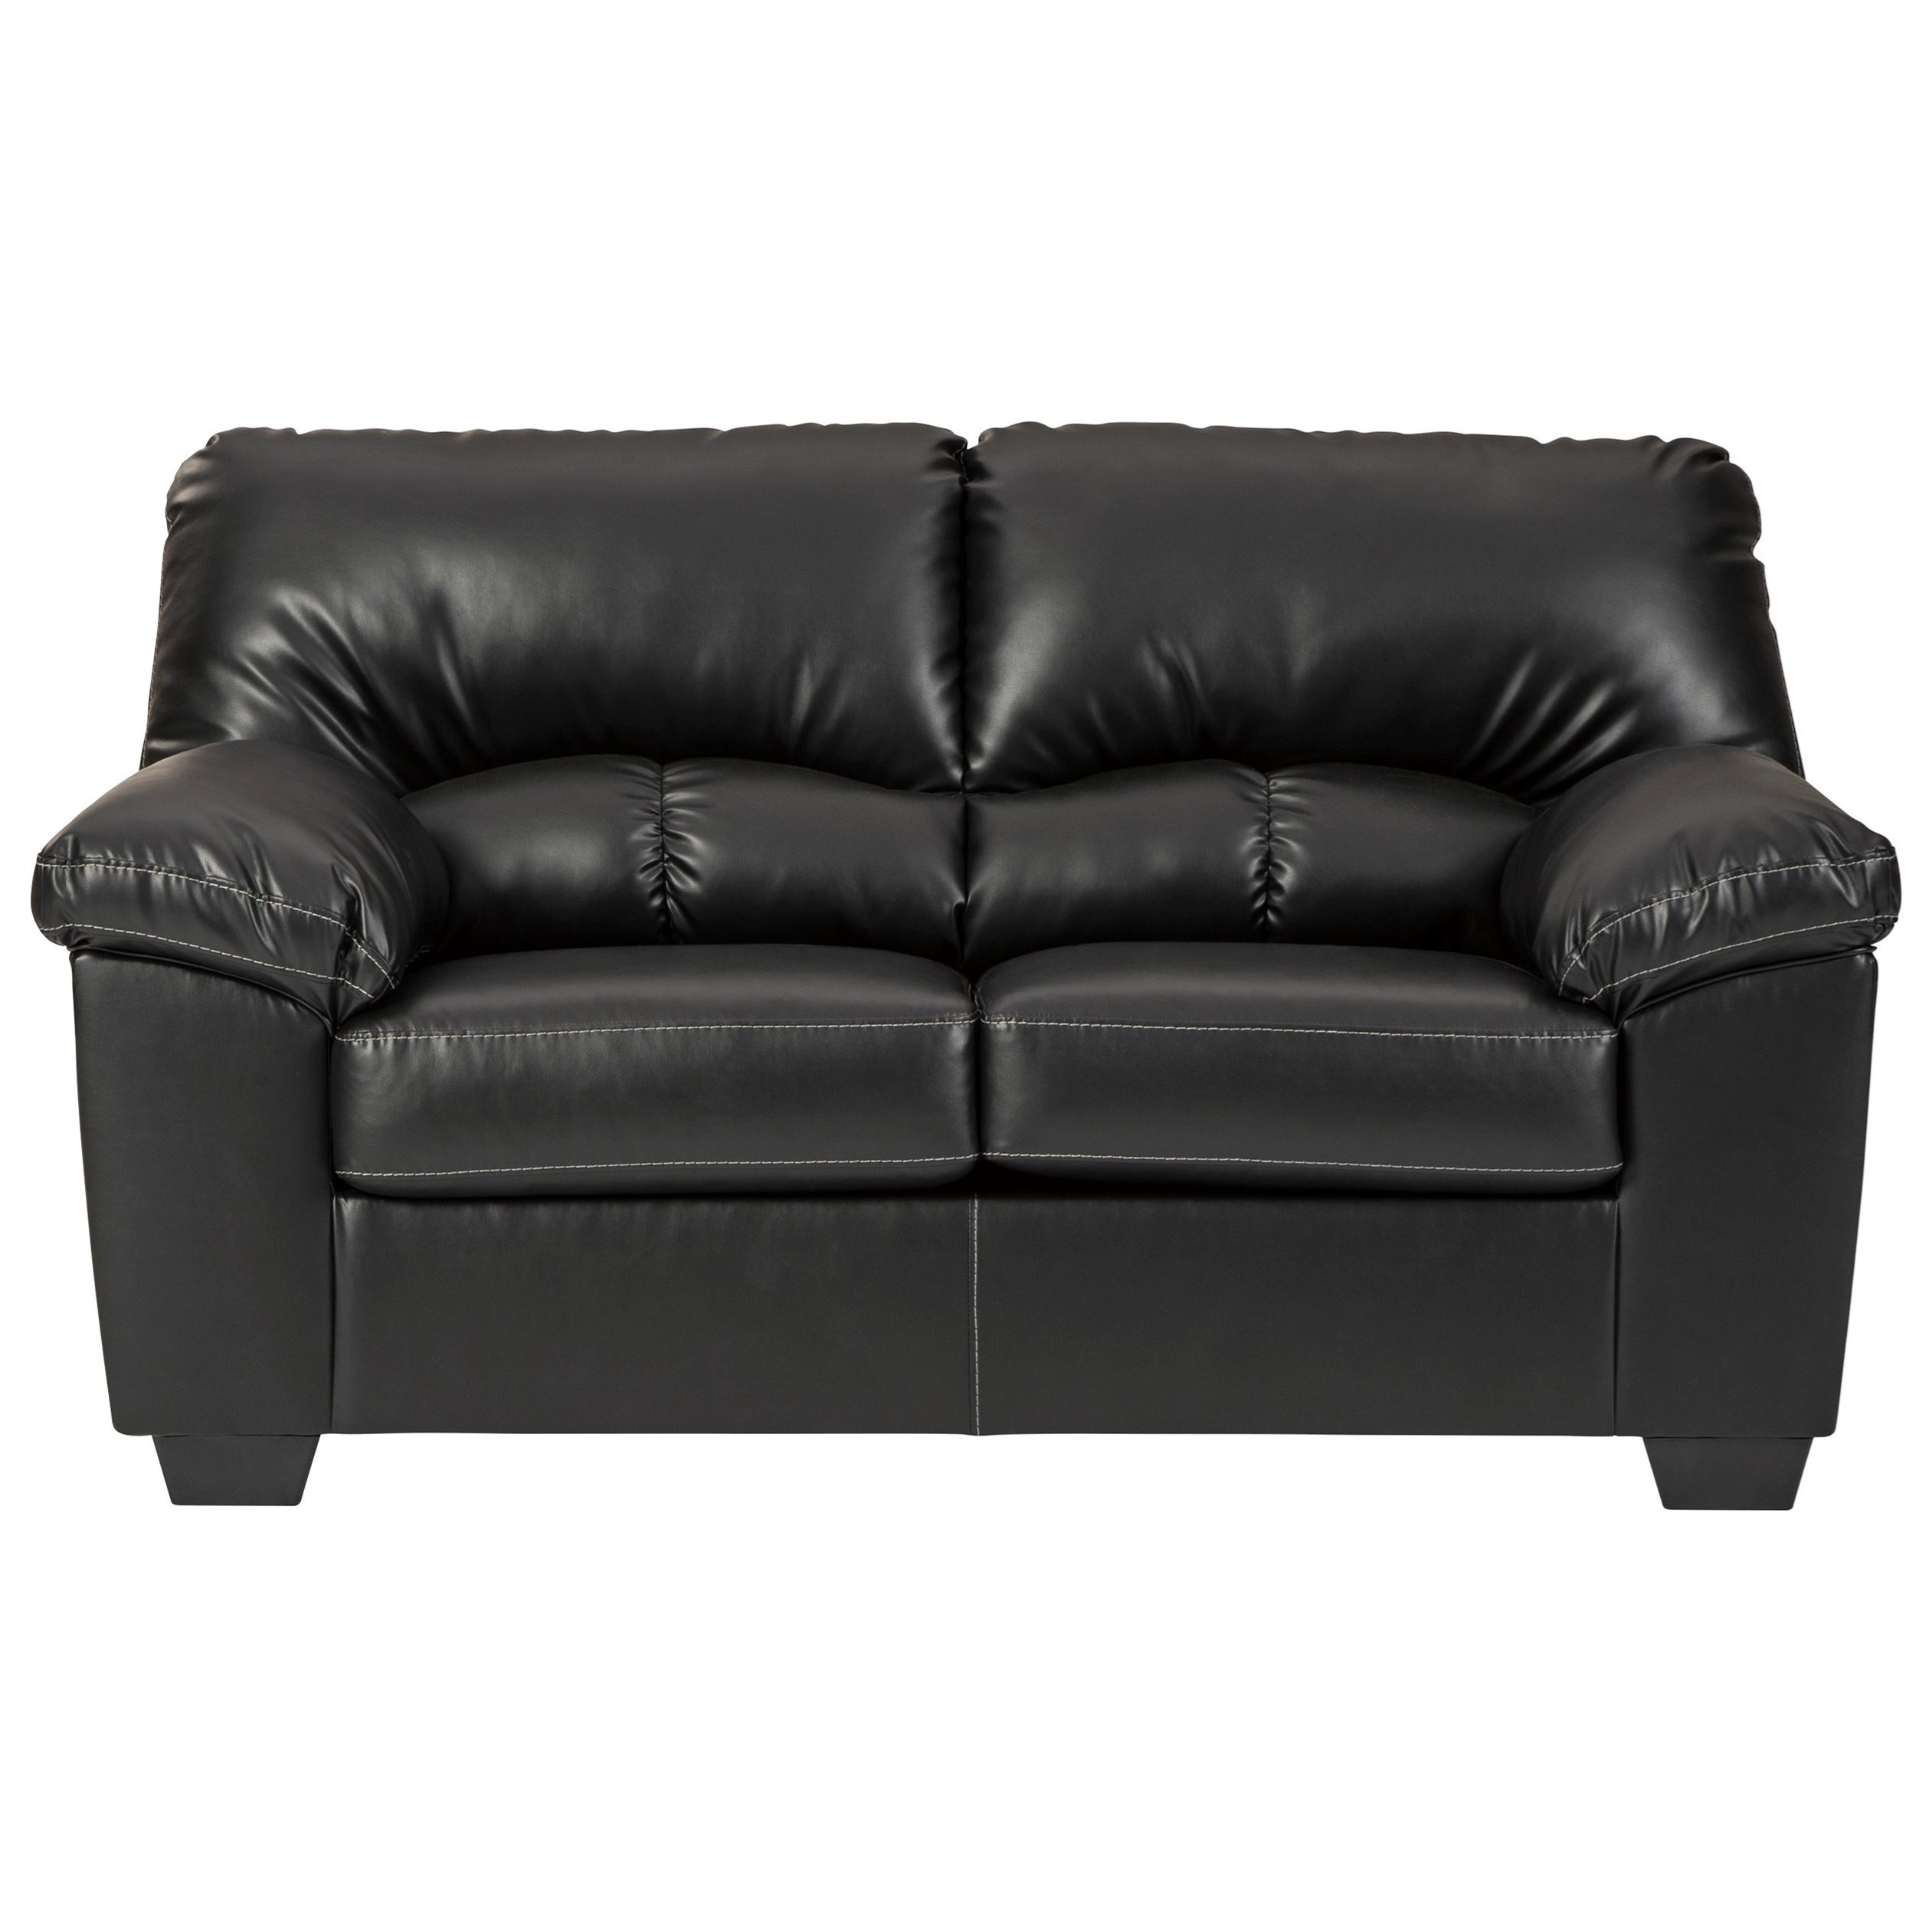 Brazoria Loveseat by Benchcraft at Zak's Warehouse Clearance Center